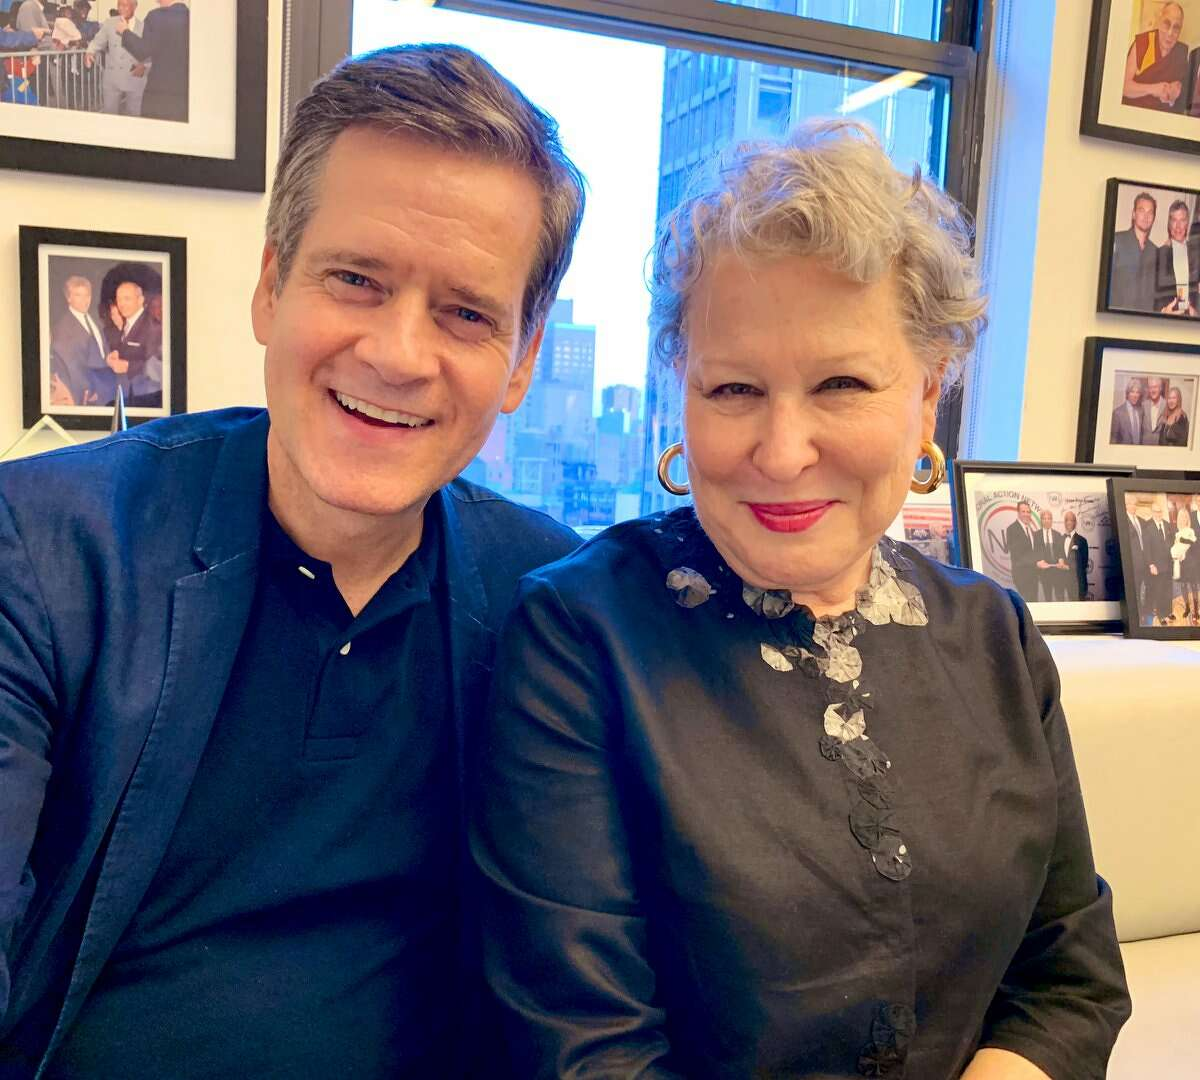 State Sen. Brad Hoylman, D-Manhattan, met with actress Bette Midler in October as she studied to play the chief of staff for a New York State senator in Netflix's